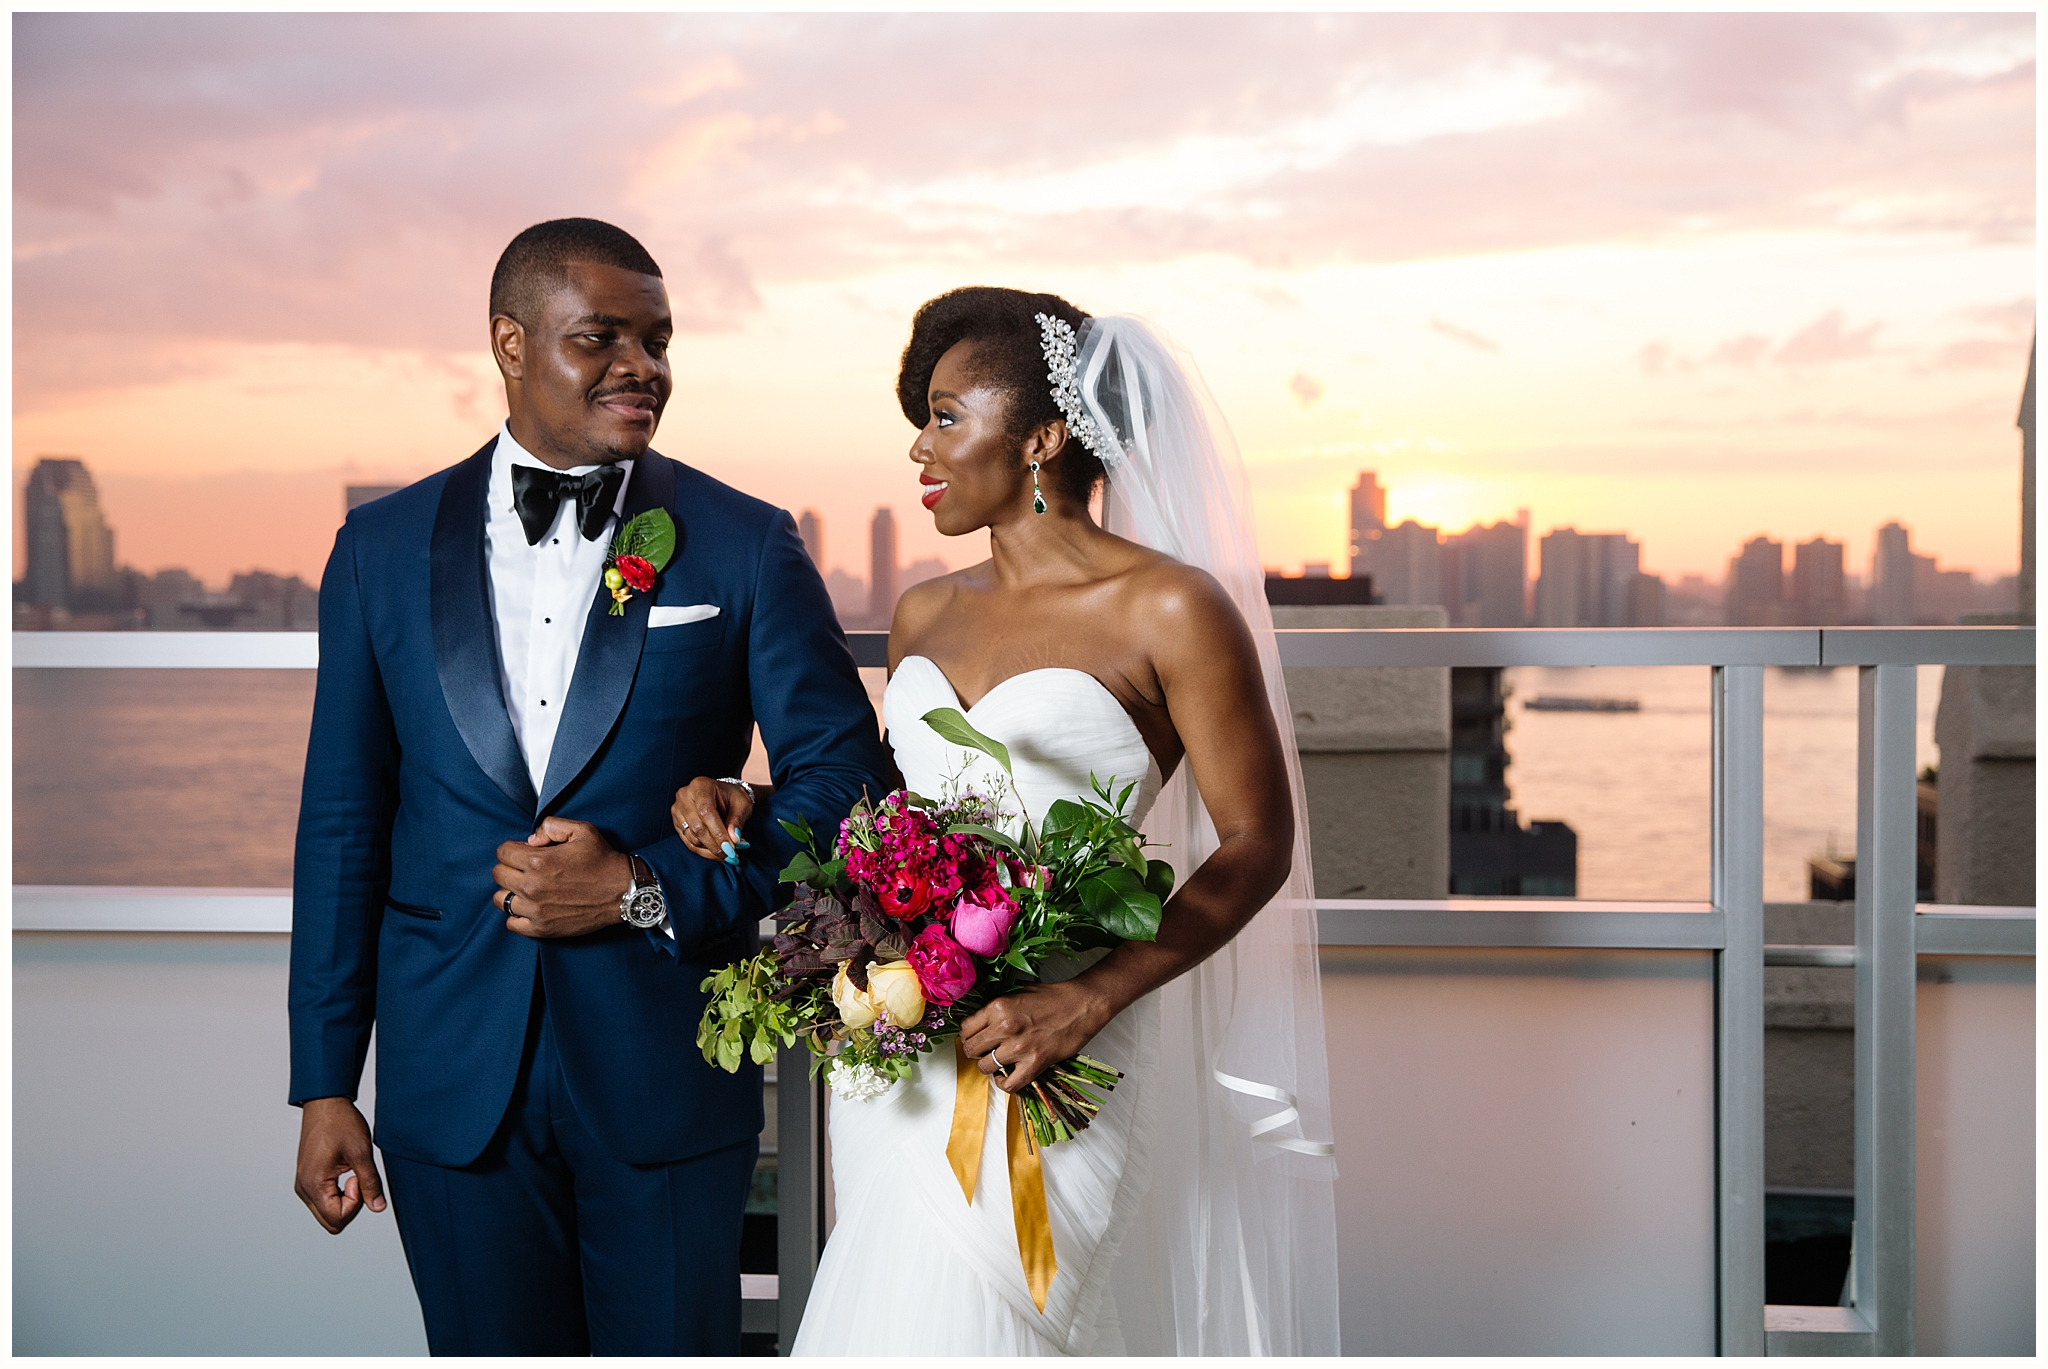 NYC Tribeca Rooftop Wedding Photographer_0038.jpg